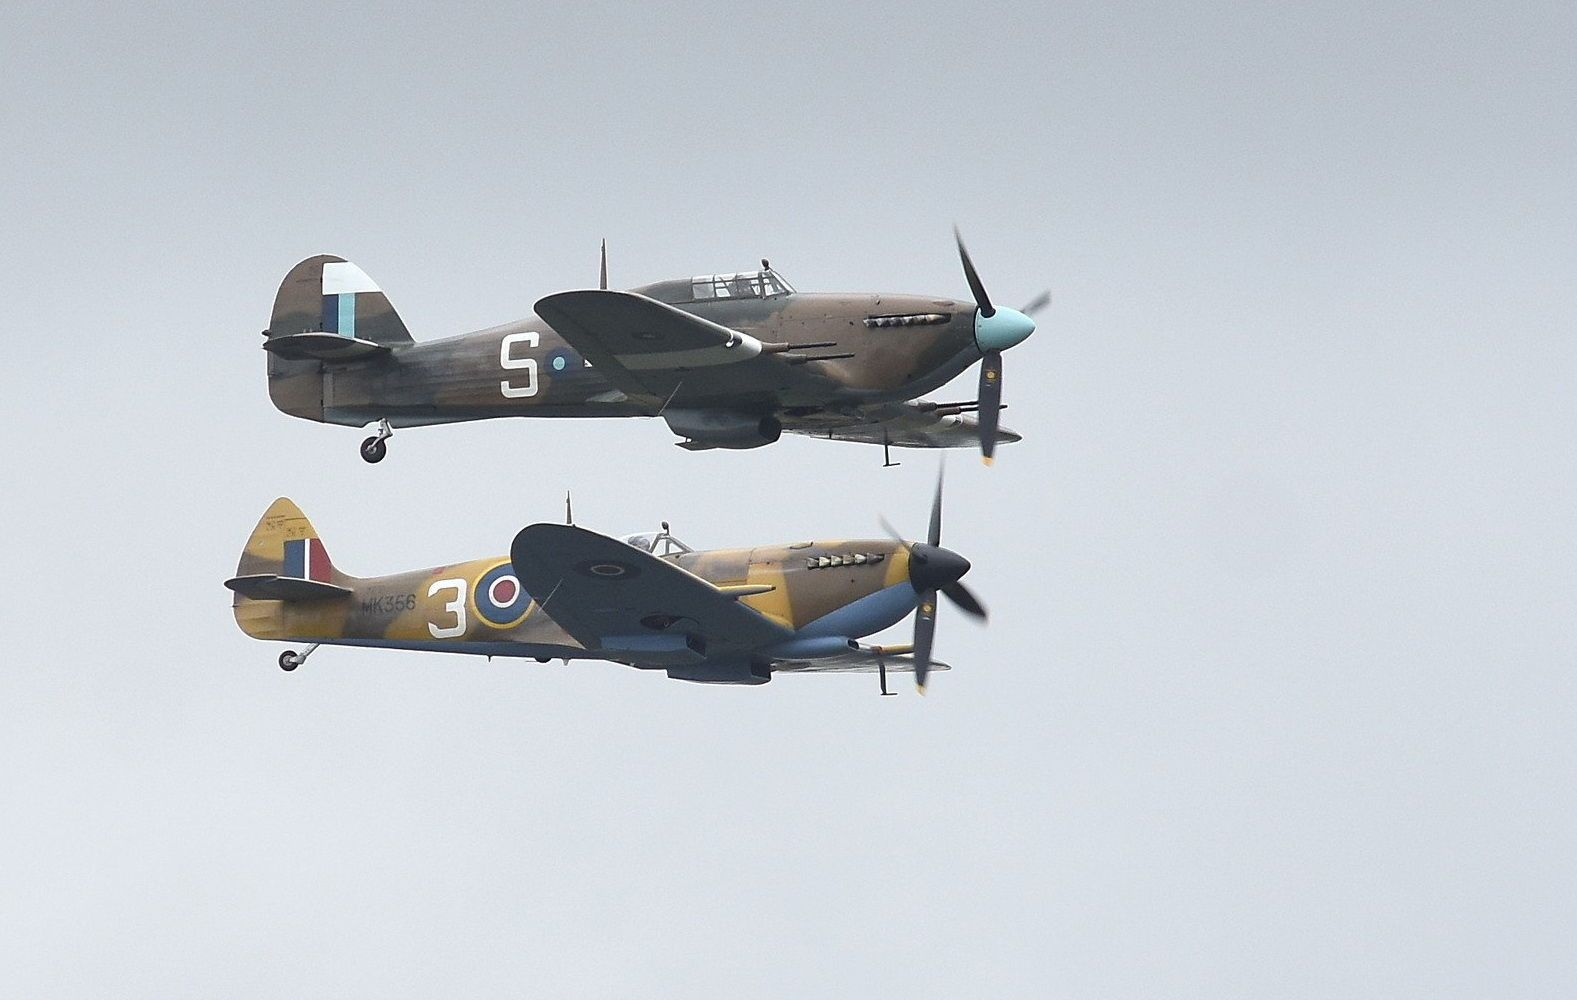 Fighter Aircraft Hawker Hurricane Top And Supermarine Spitfire Aviation Riat2019 Cacas